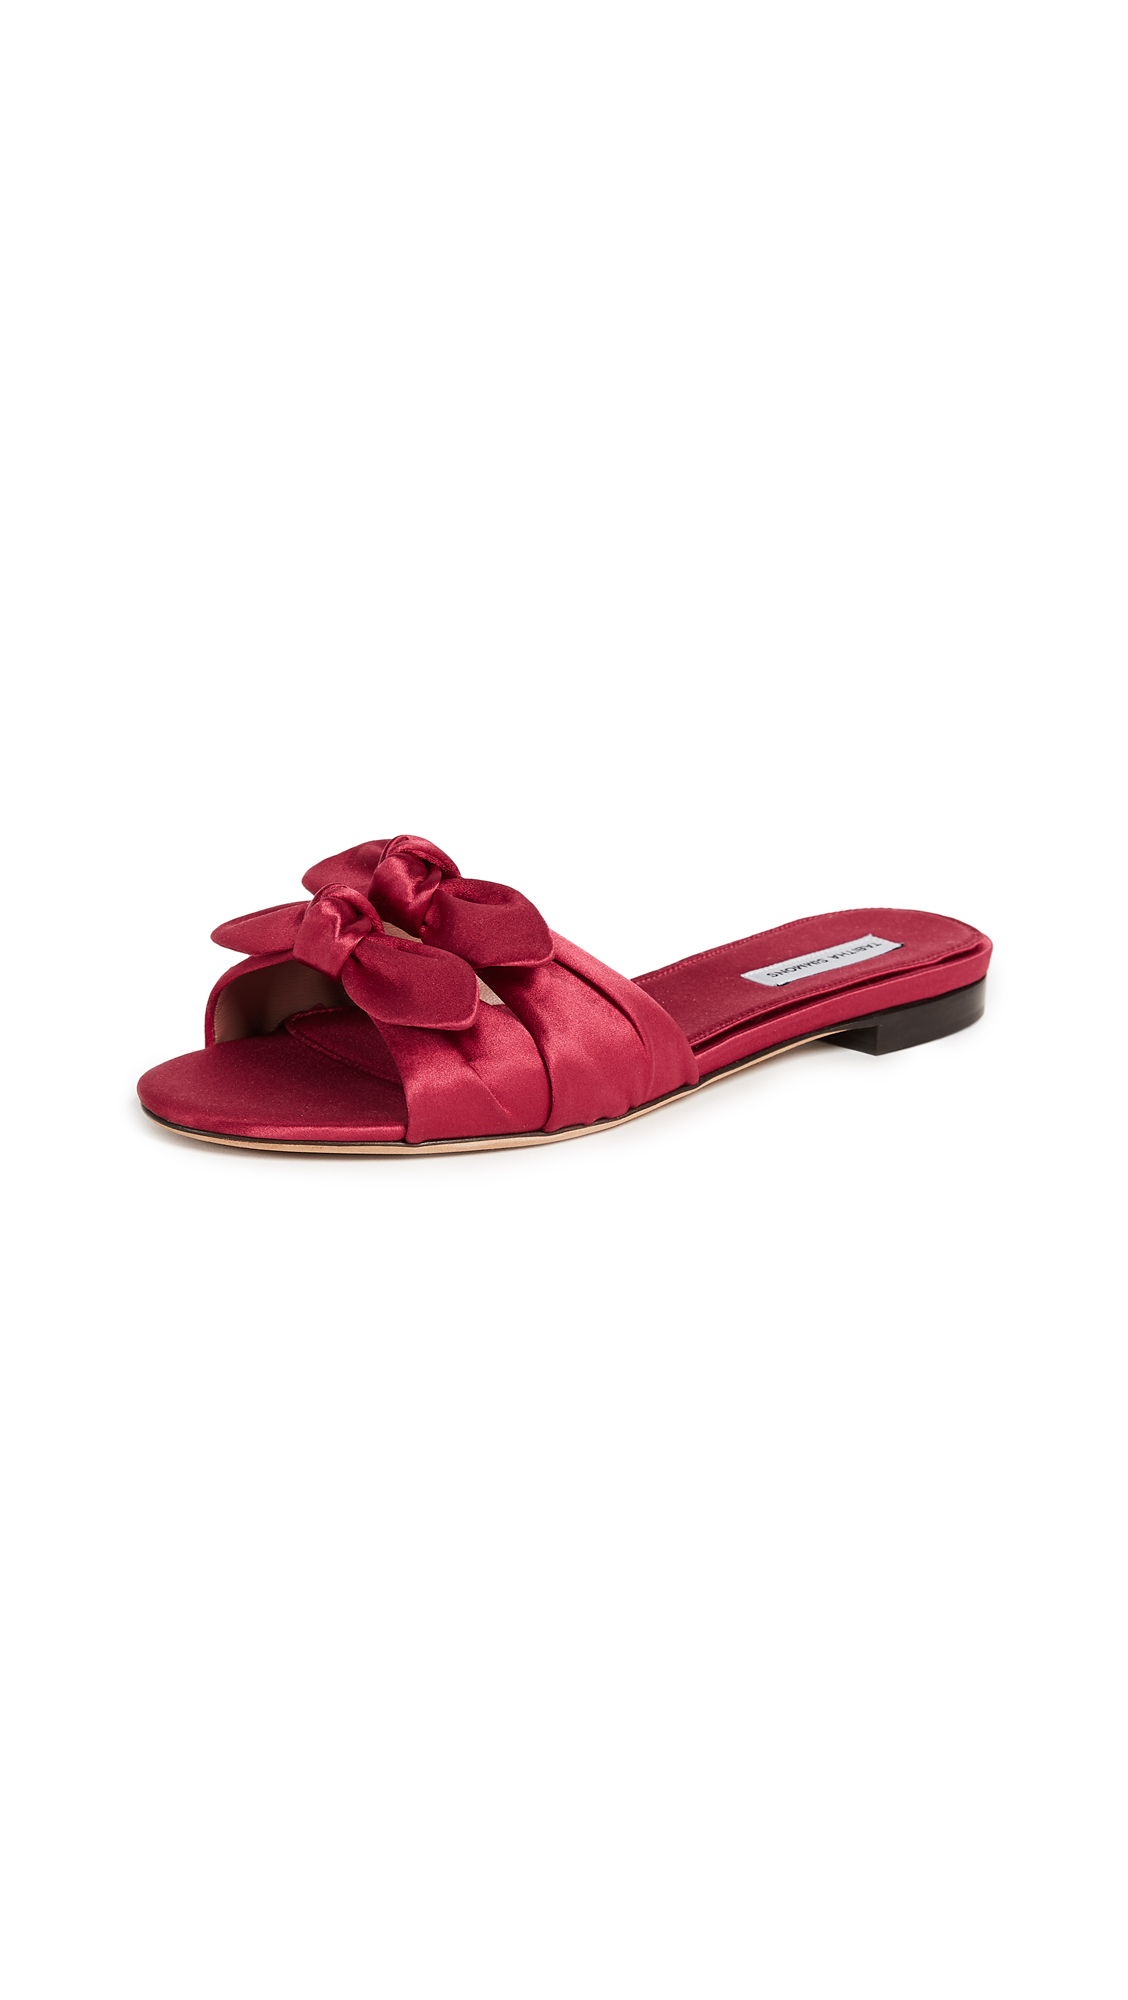 Tabitha Simmons Cleo Sandals - Red